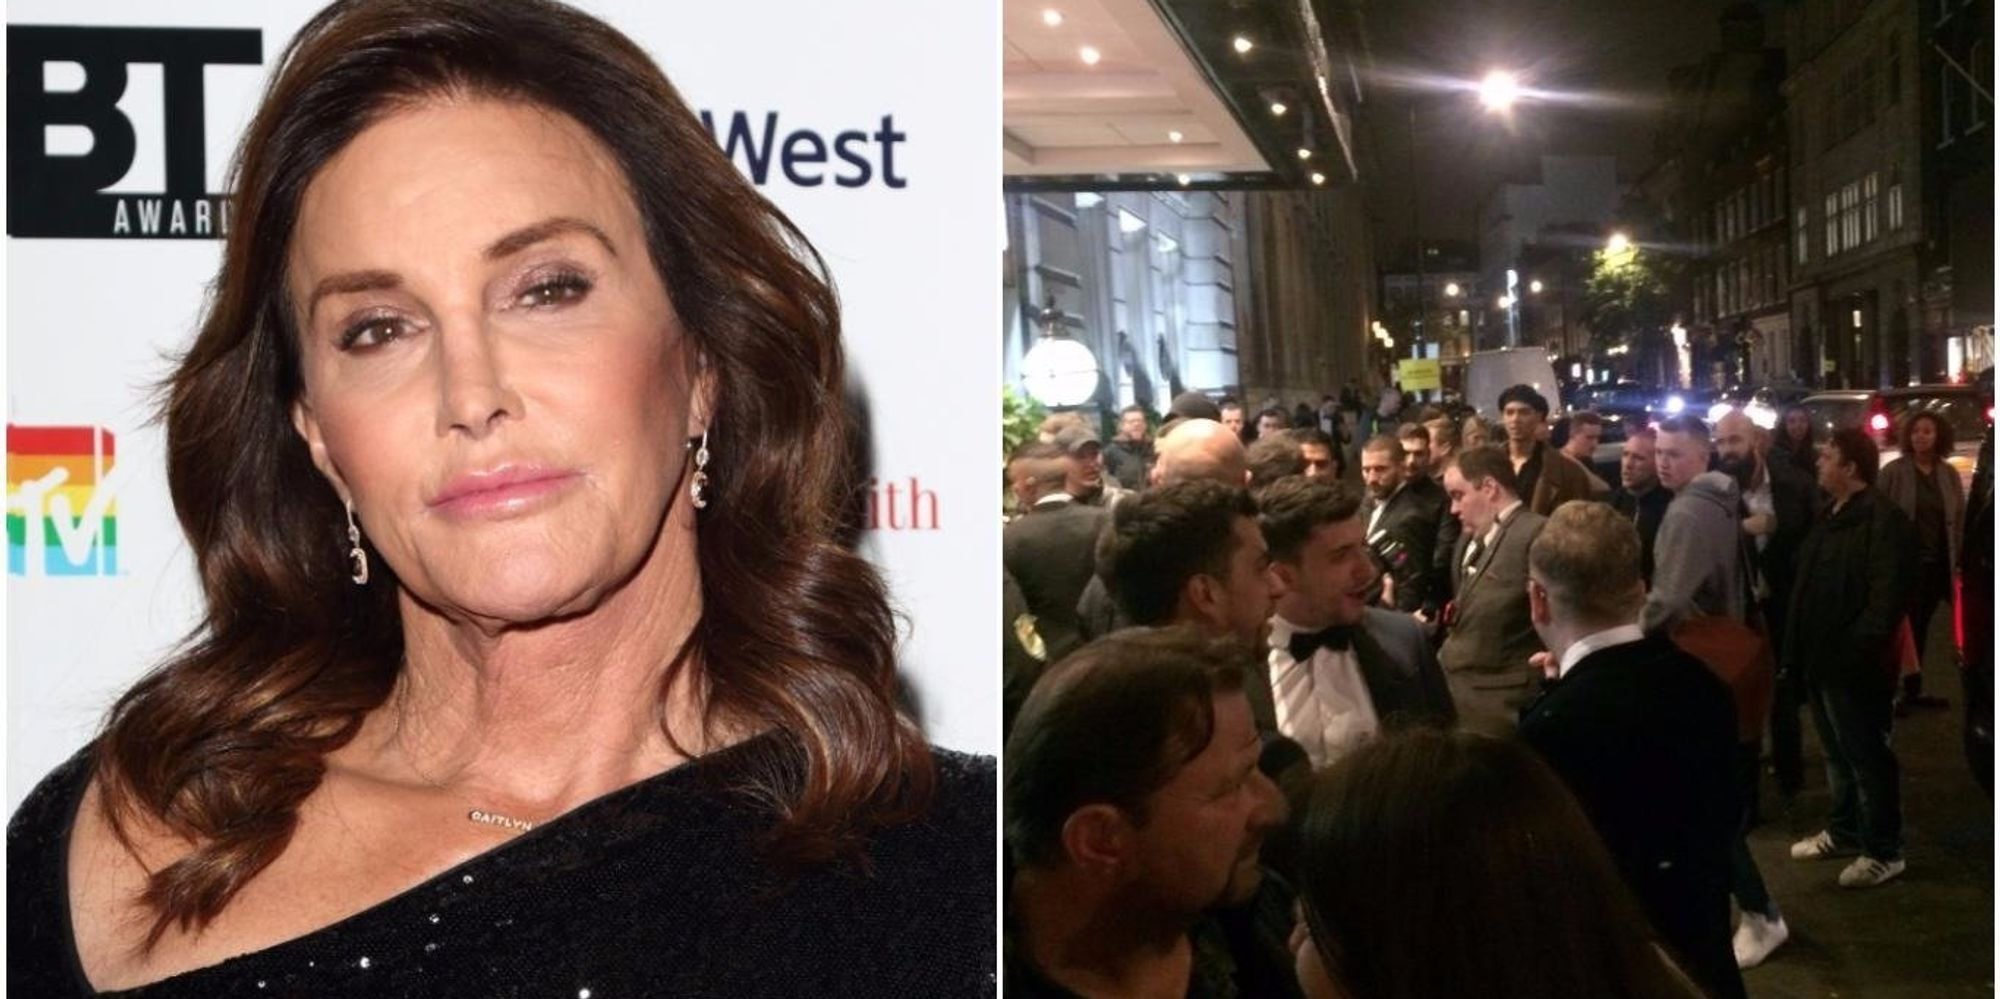 Caitlyn Jenner Suffers Vile Transphobic Attack After London LGBT Awards